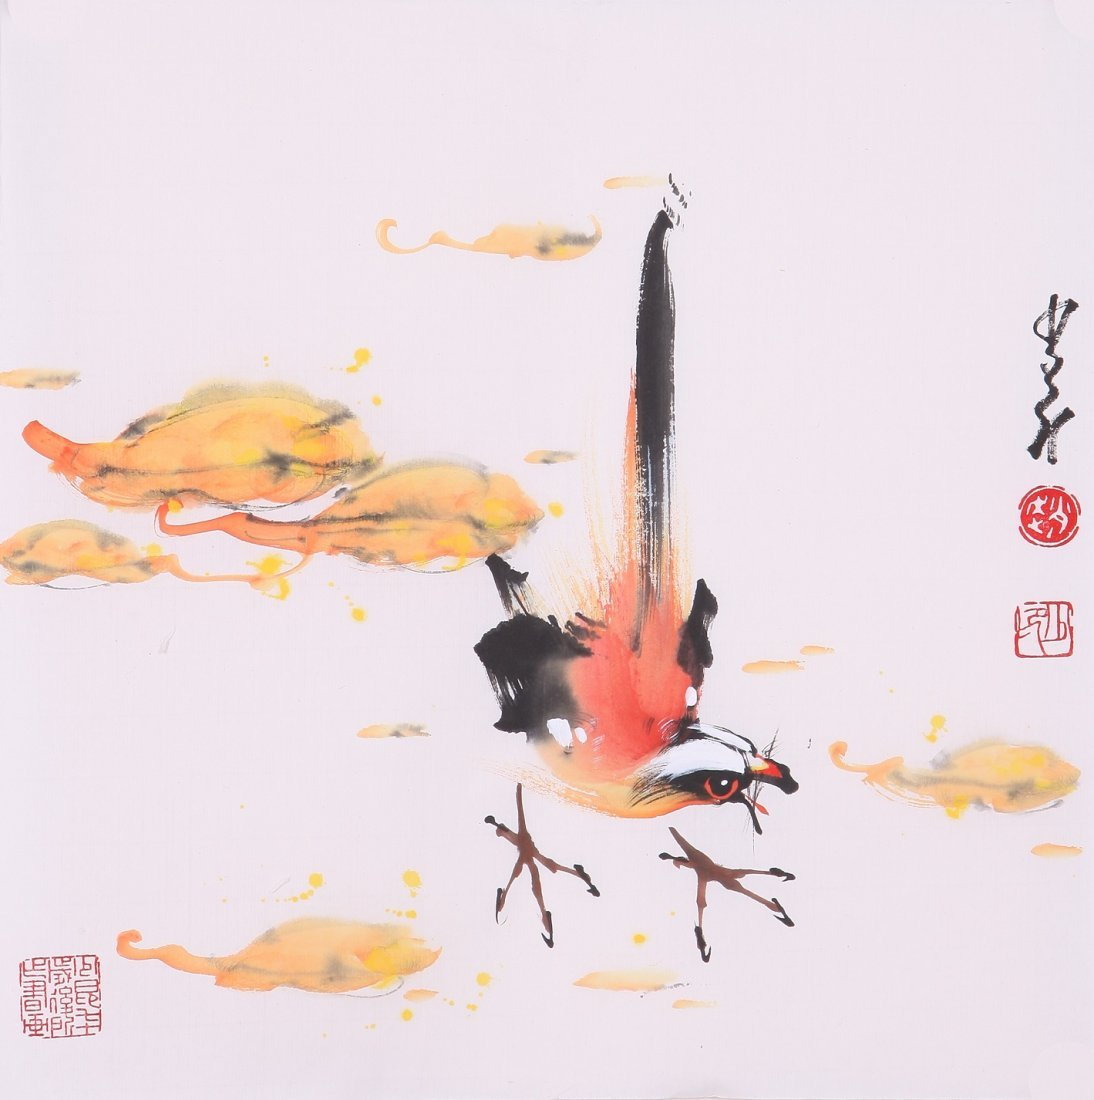 8016: Very fine chinese painting by Zhao Shaoang